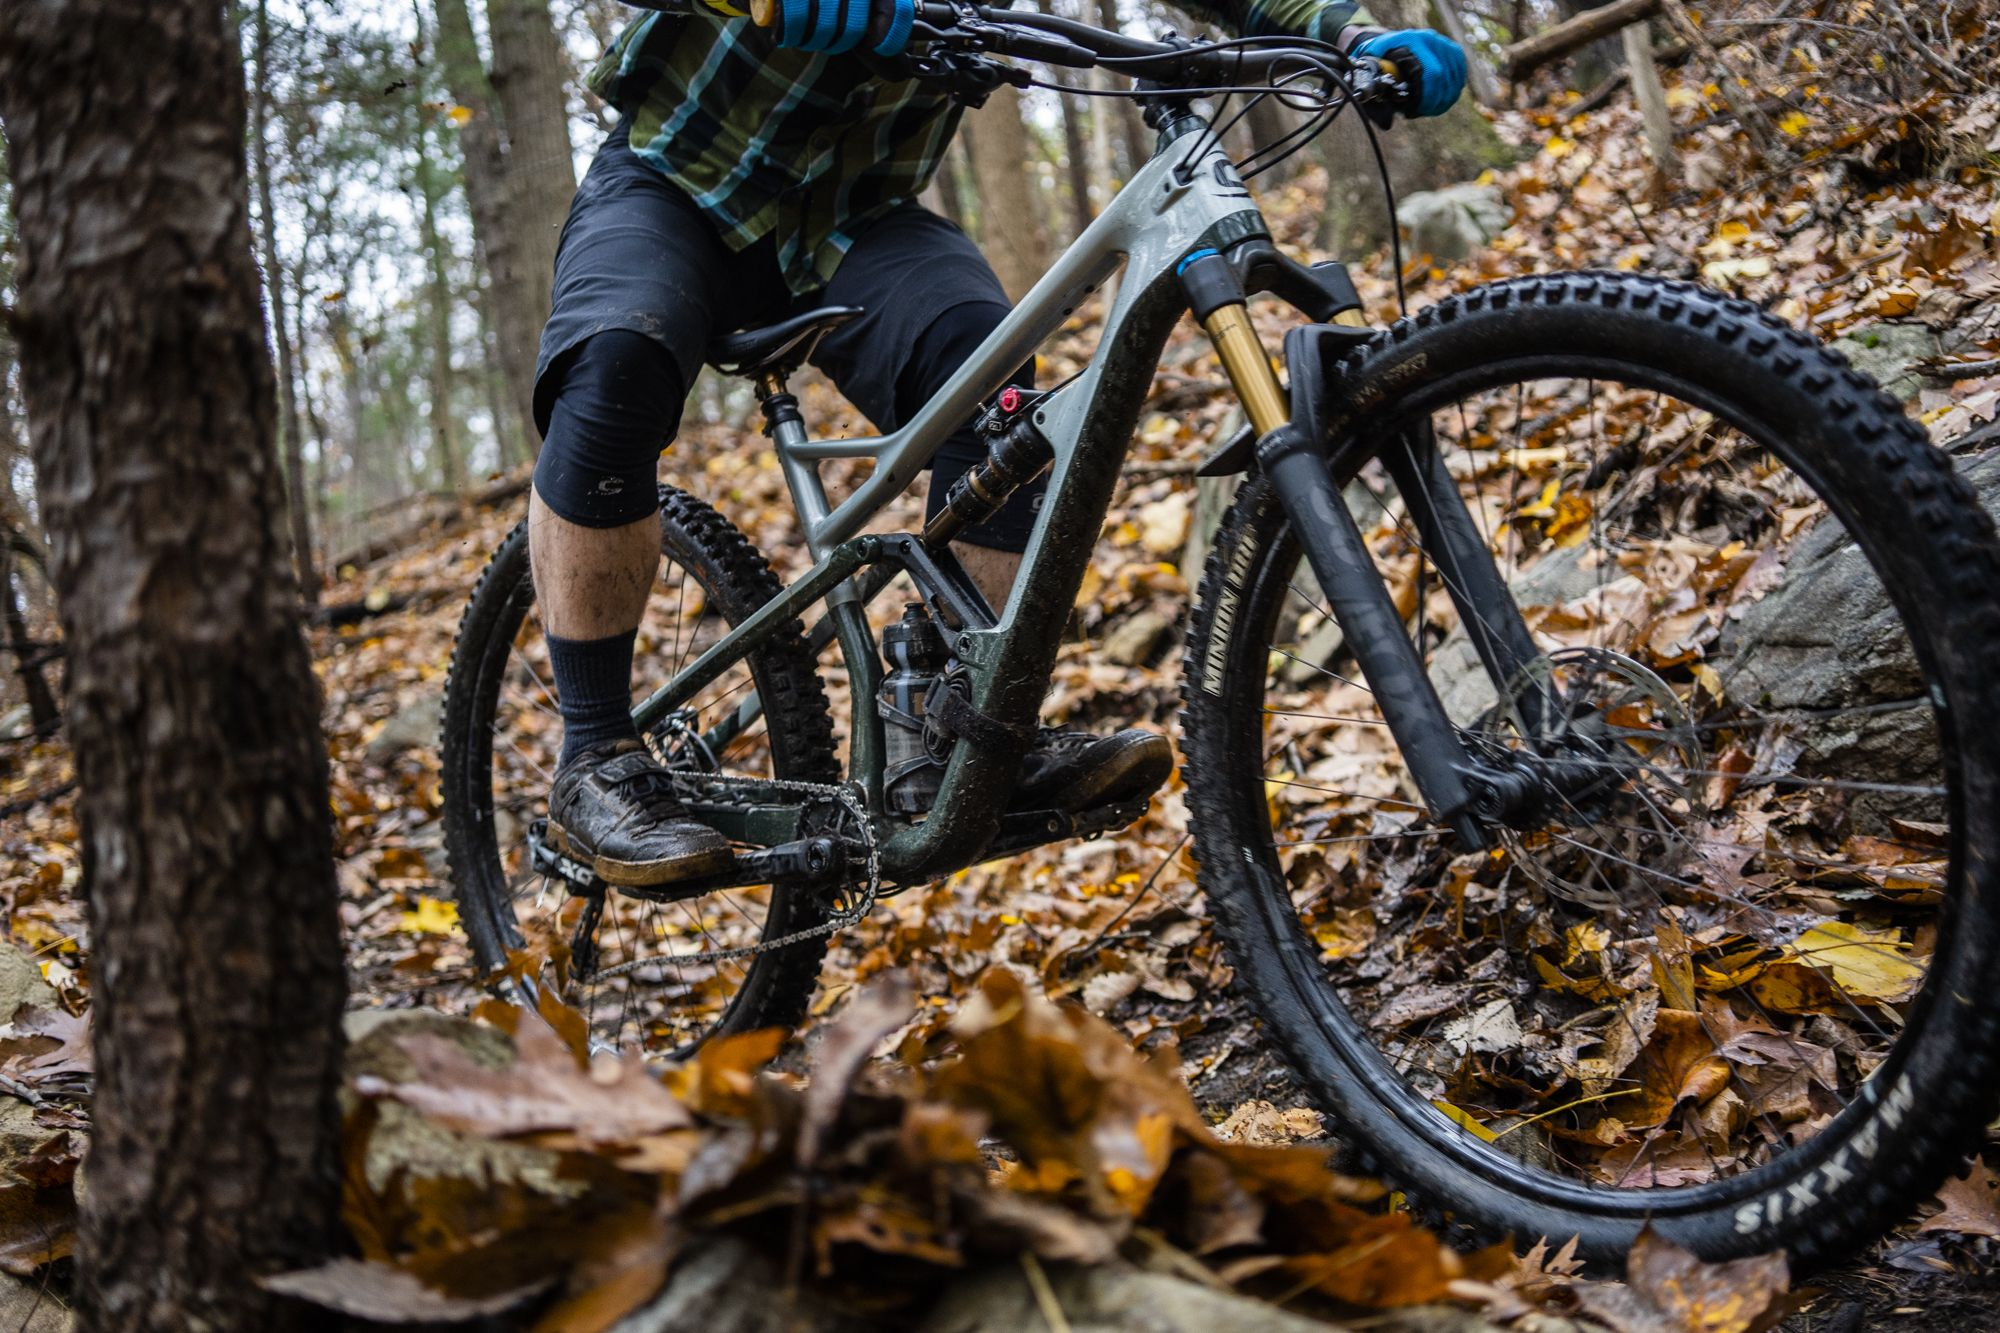 A dropper post allows you to lower your center of gravity and sit back as the trails get steep.